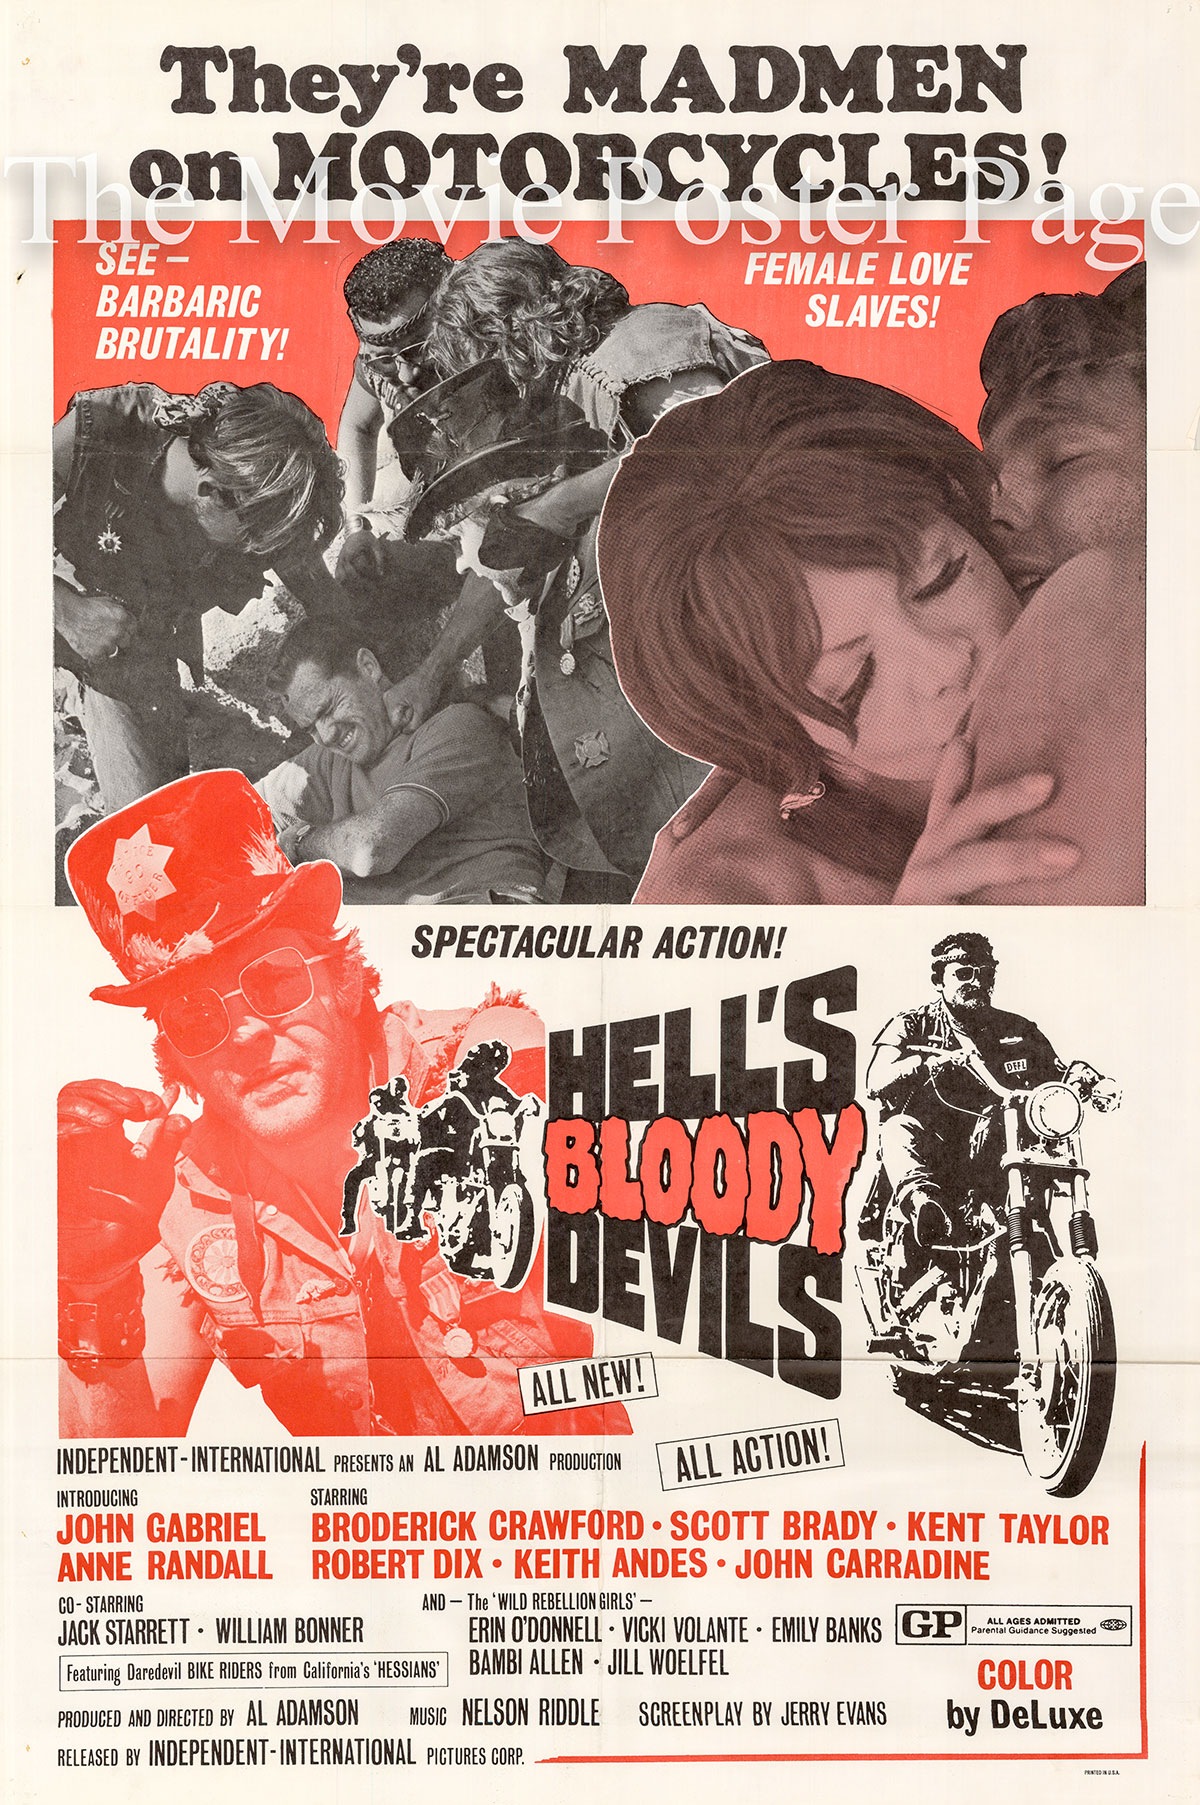 Pictured is a US promotional one-sheet poster for the 1970 Al Adamson film Hell's Bloody Devils starring John Carradine.